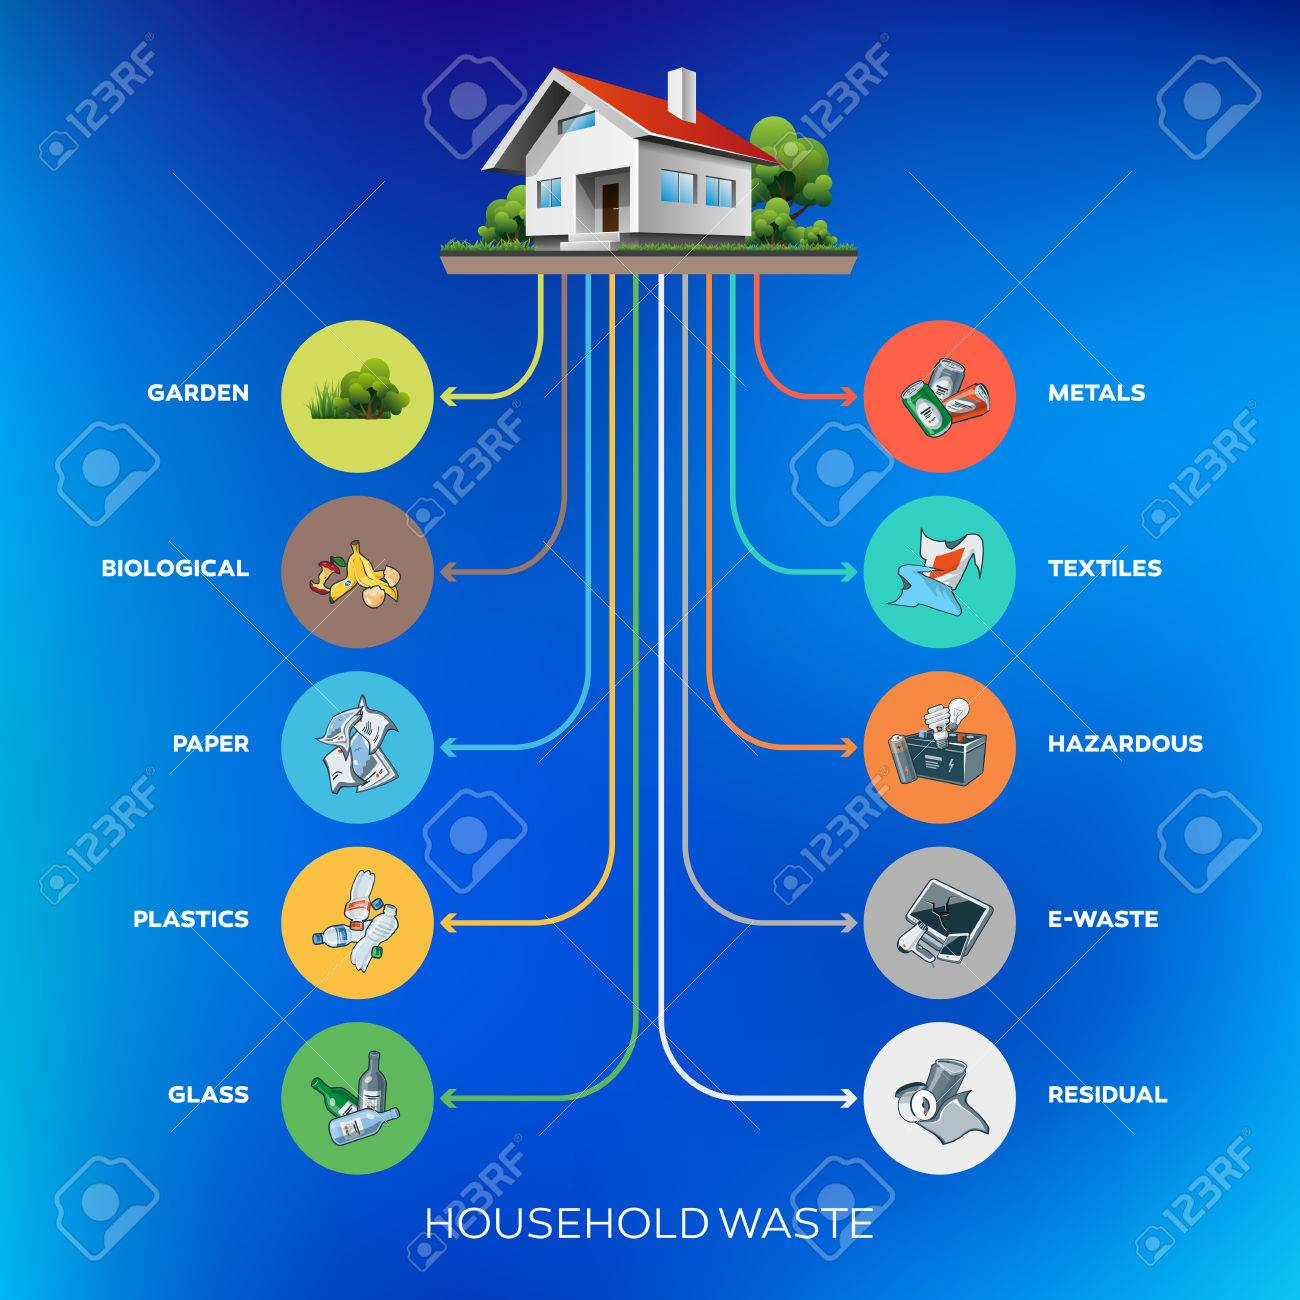 Composition of household waste categories infographic with organic - 45251261